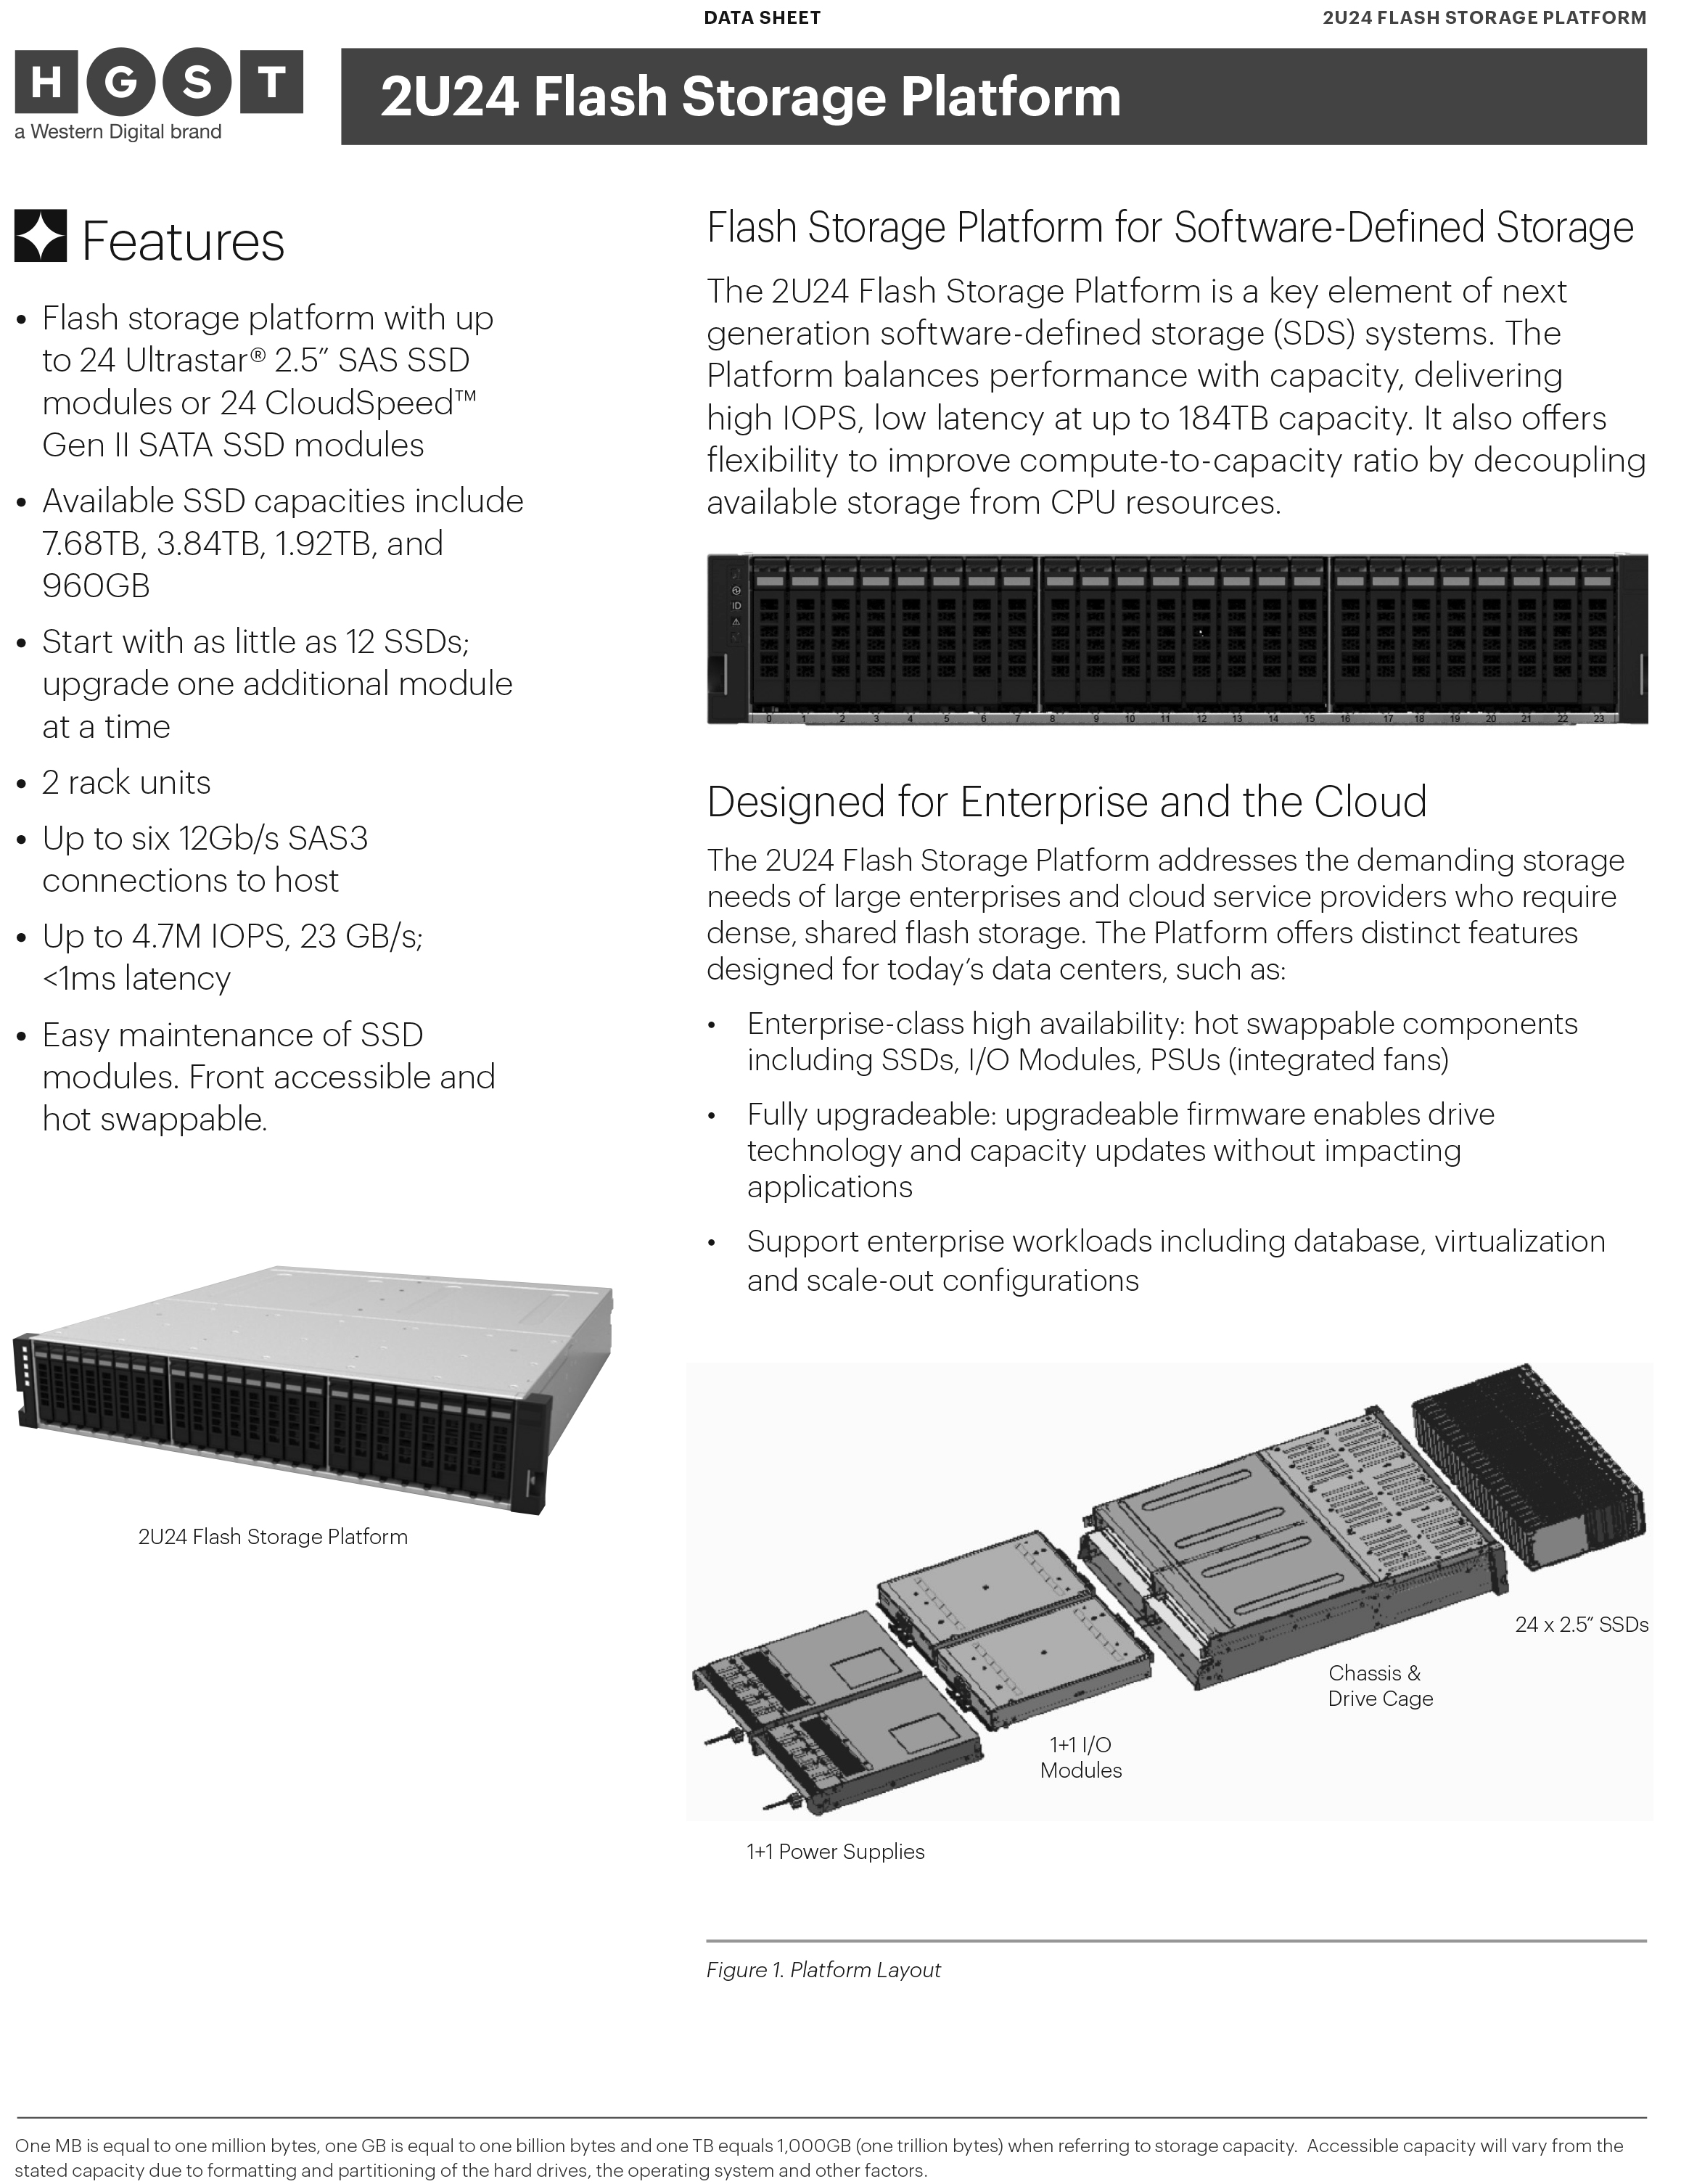 HGST 2U24 Flash Storage Data Sheet